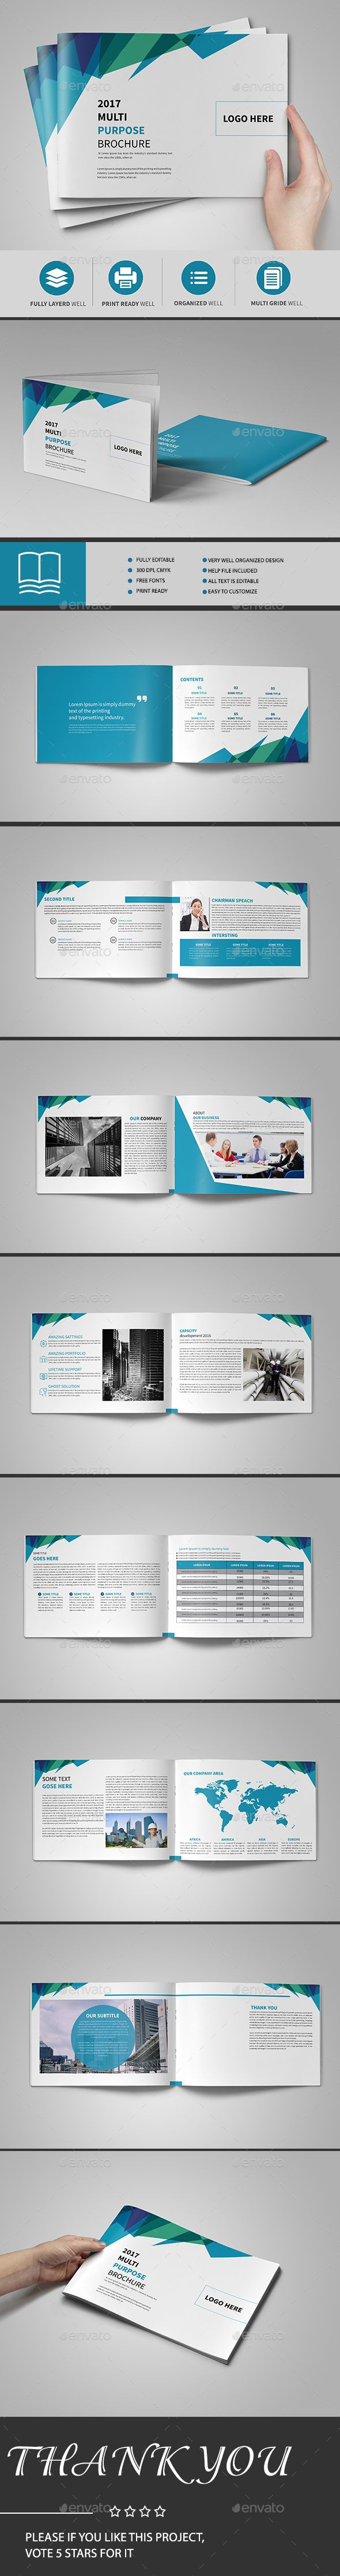 Minimal Business Brochure — InDesign INDD #modern catalogue #modern • Available here → https://graphicriver.net/item/minimal-business-brochure/17788340?ref=pxcr